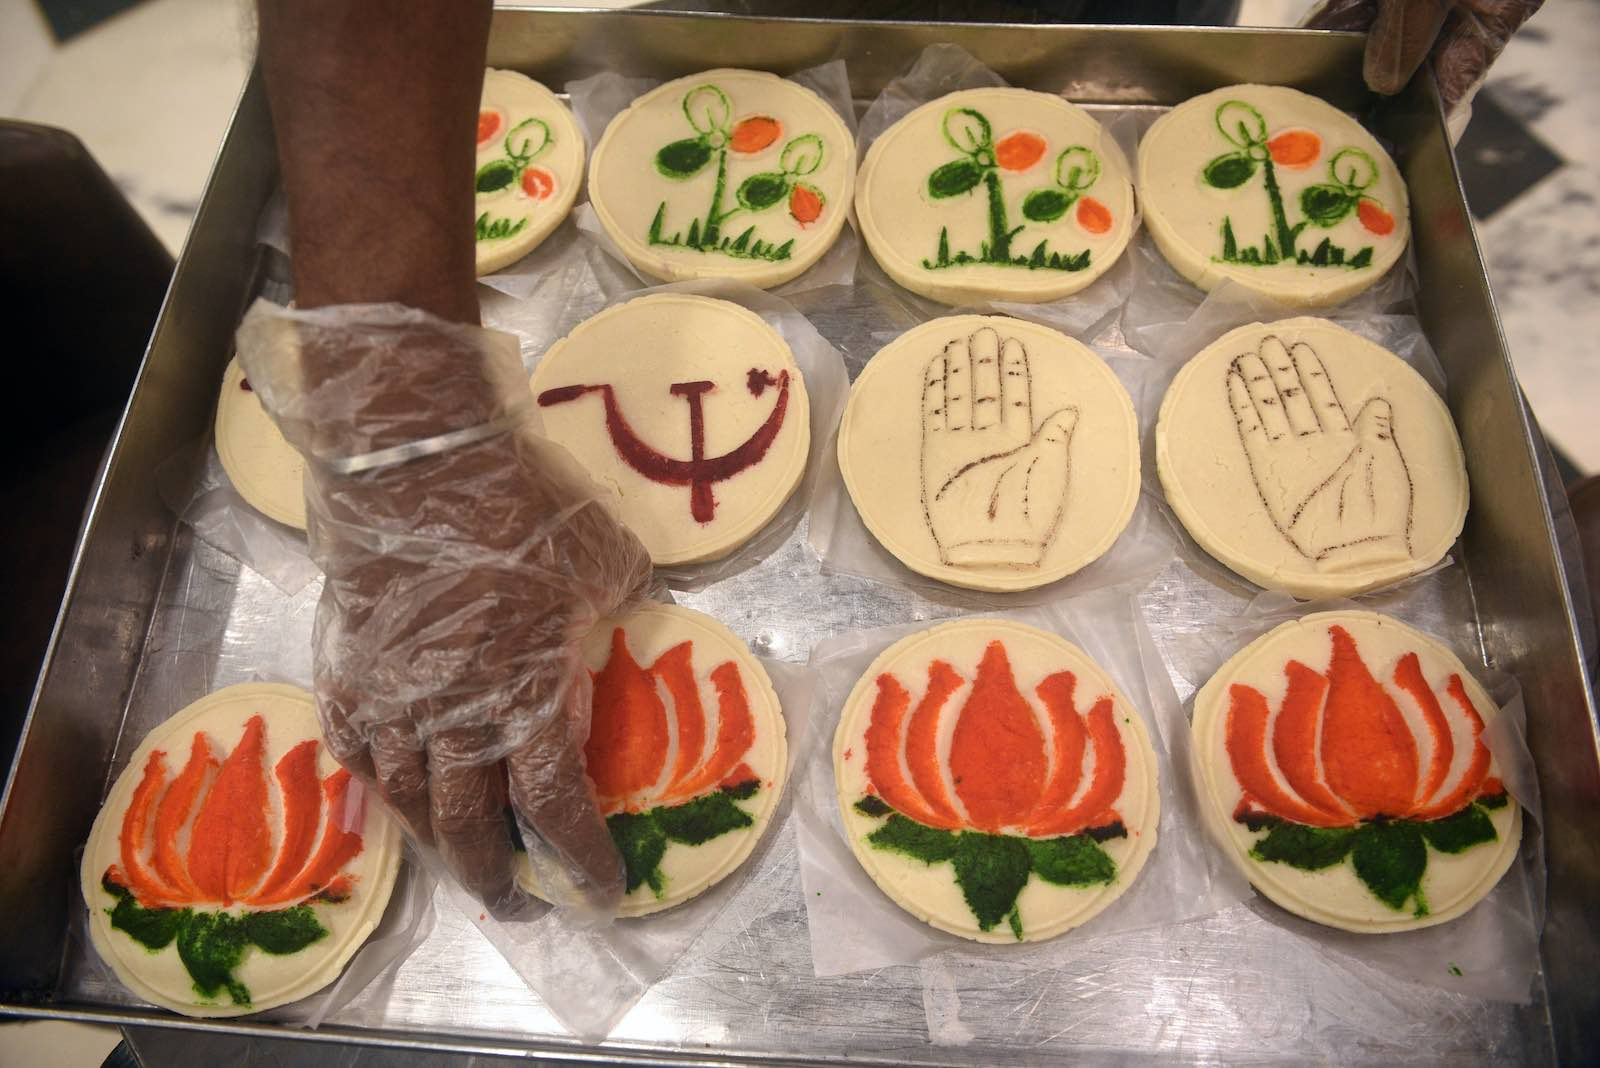 Sweets with political party symbols ahead of West Bengal Assembly election (Samir Jana/Hindustan Times via Getty Images)